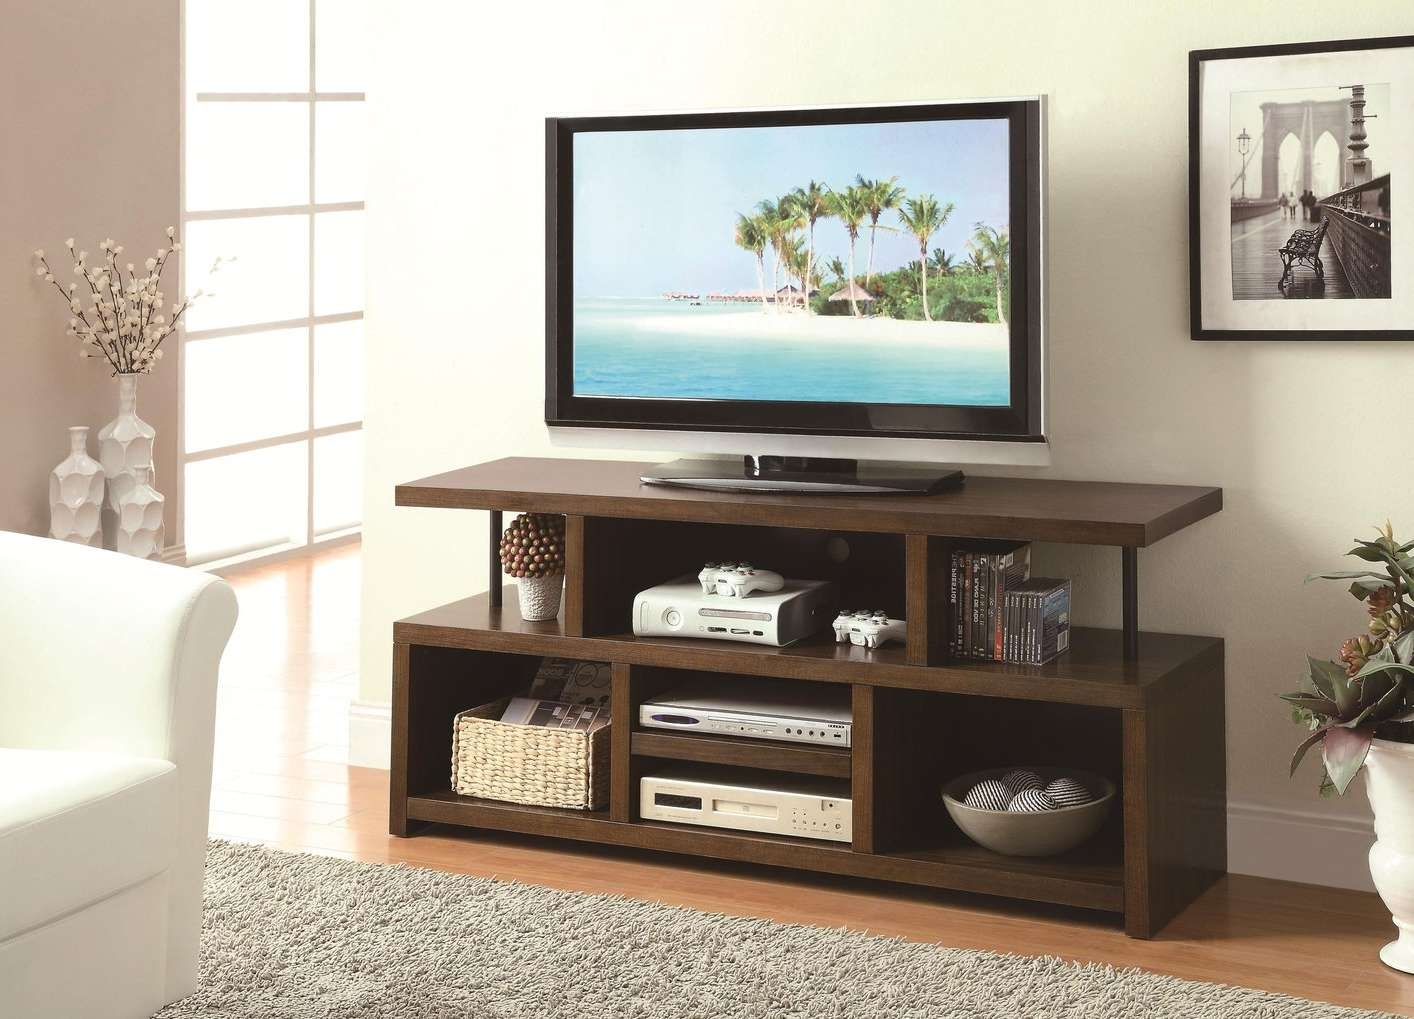 Light Wood Tv Stand Simple Room With Ikea Besta Media Cabinet Of For Open Shelf Tv Stands (View 5 of 15)